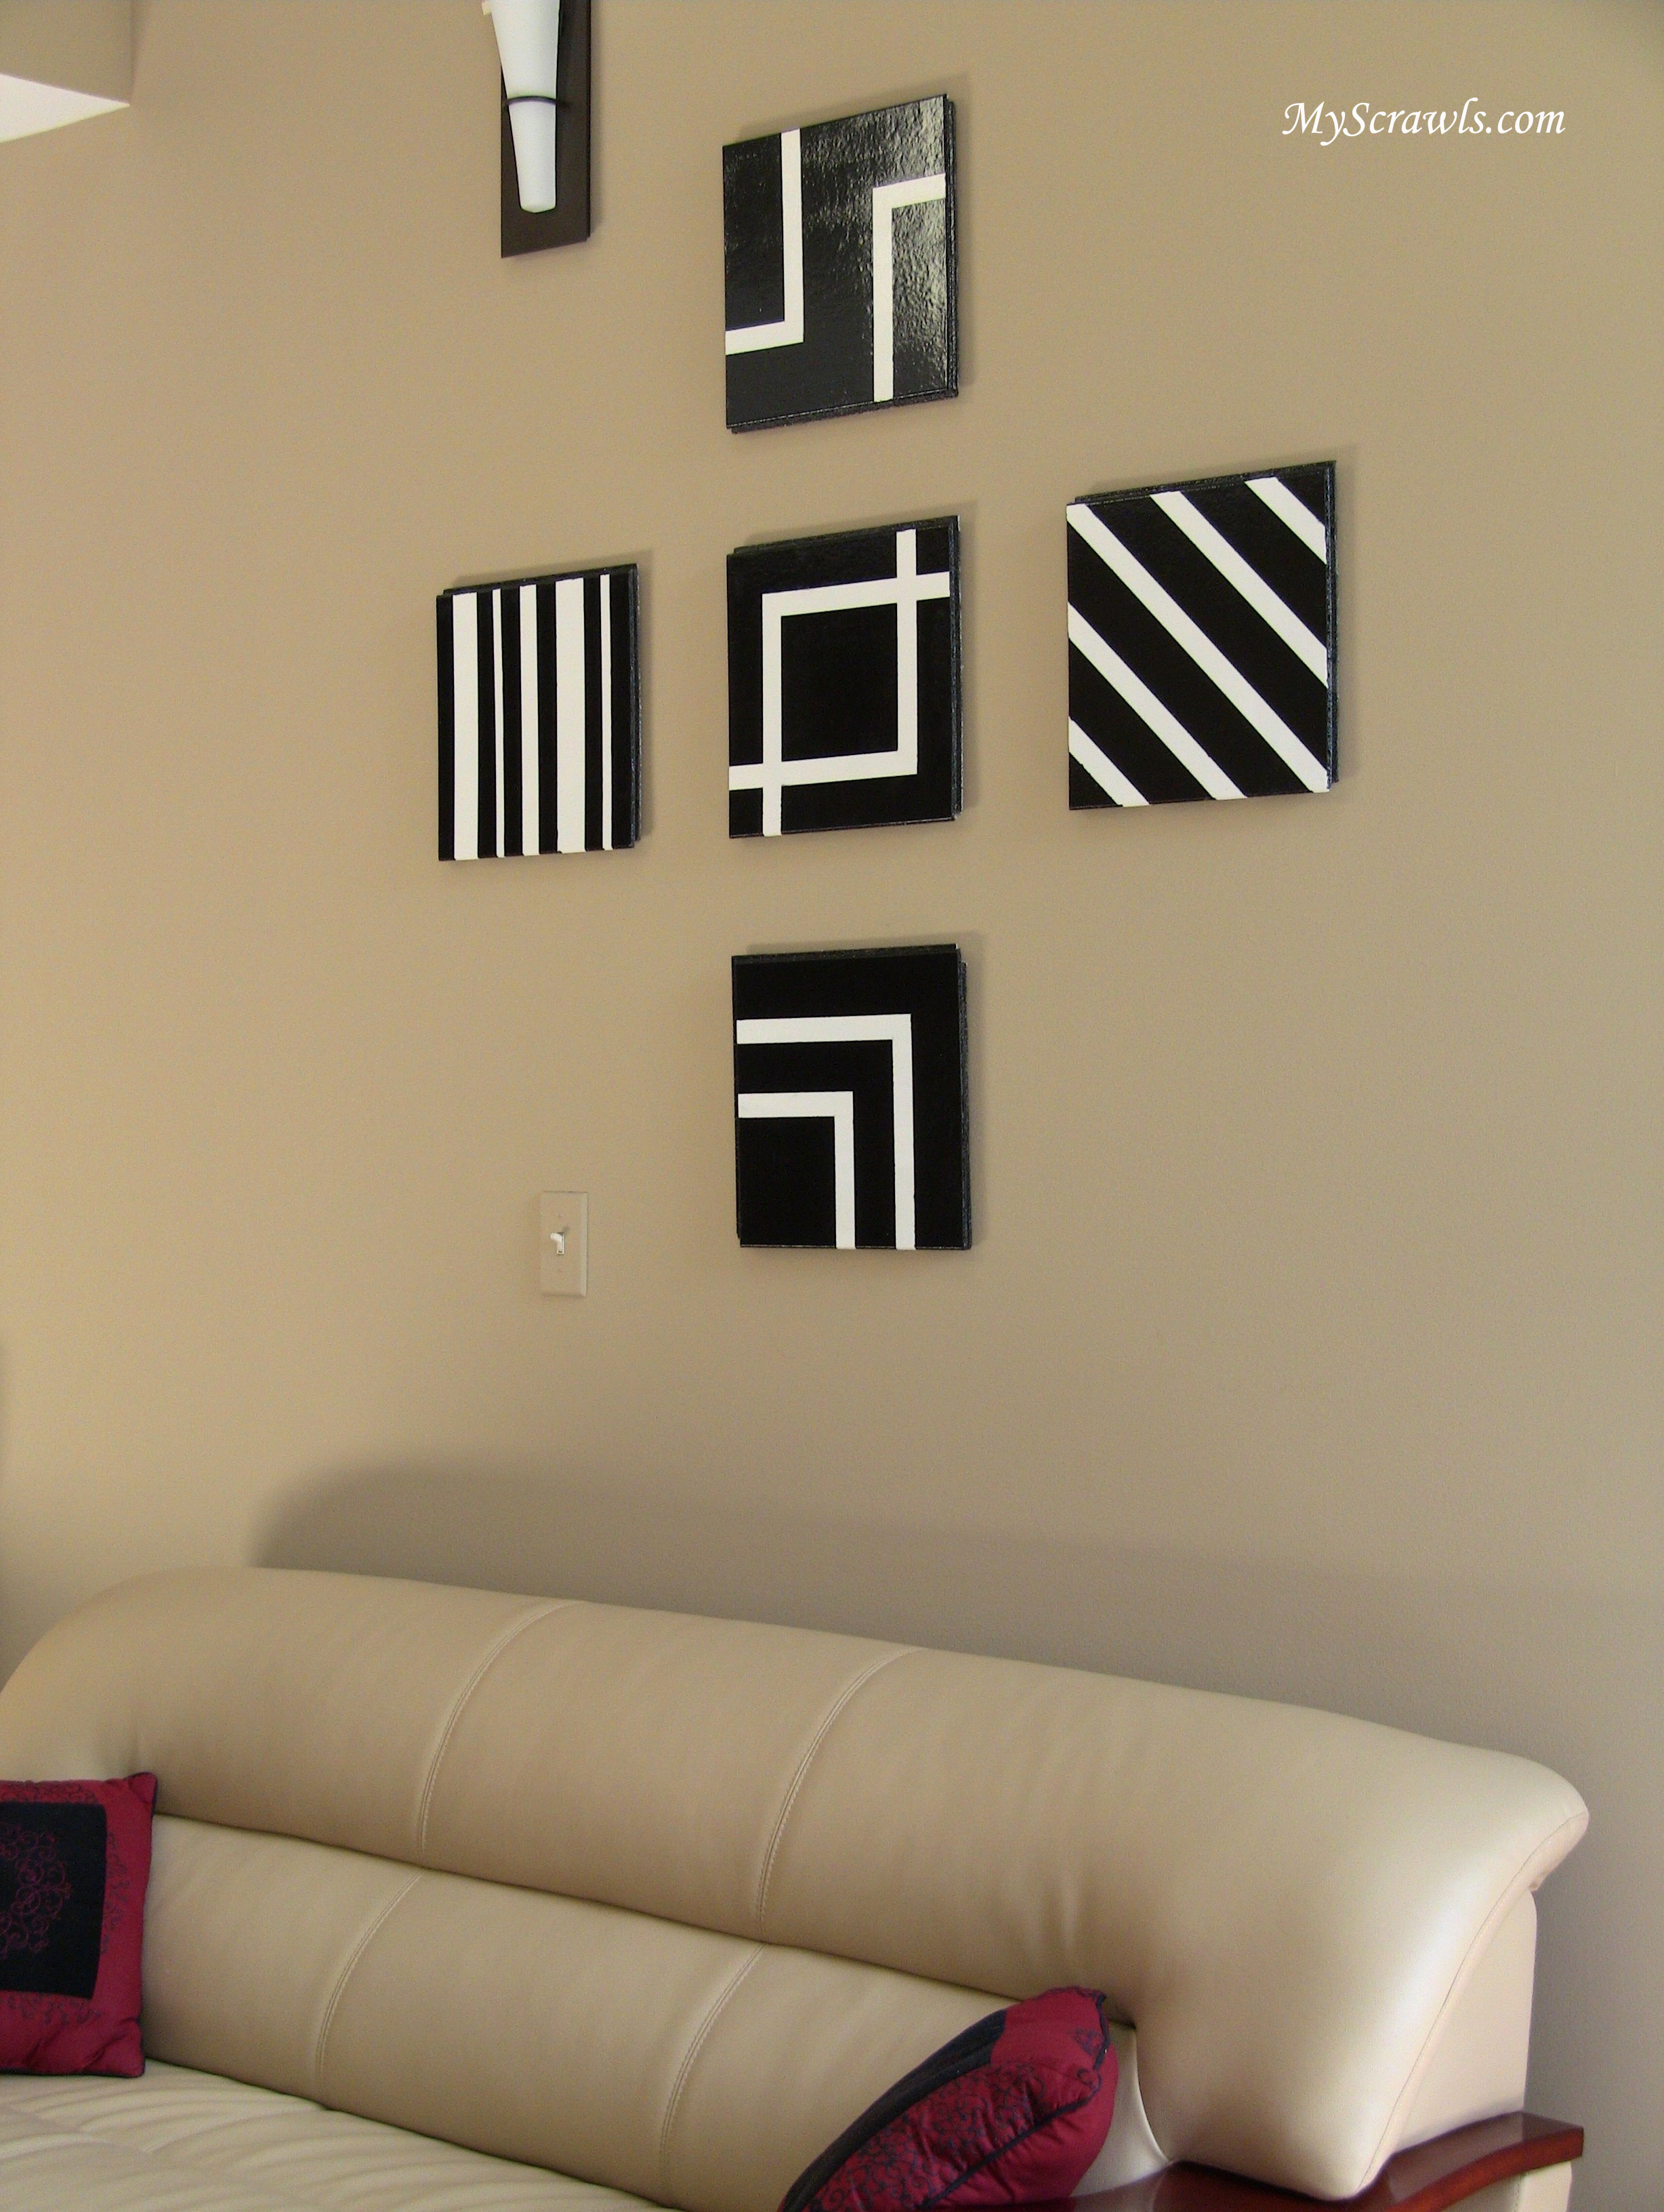 Wall art decor my scrawls - Apartment wall decorating ideas ...